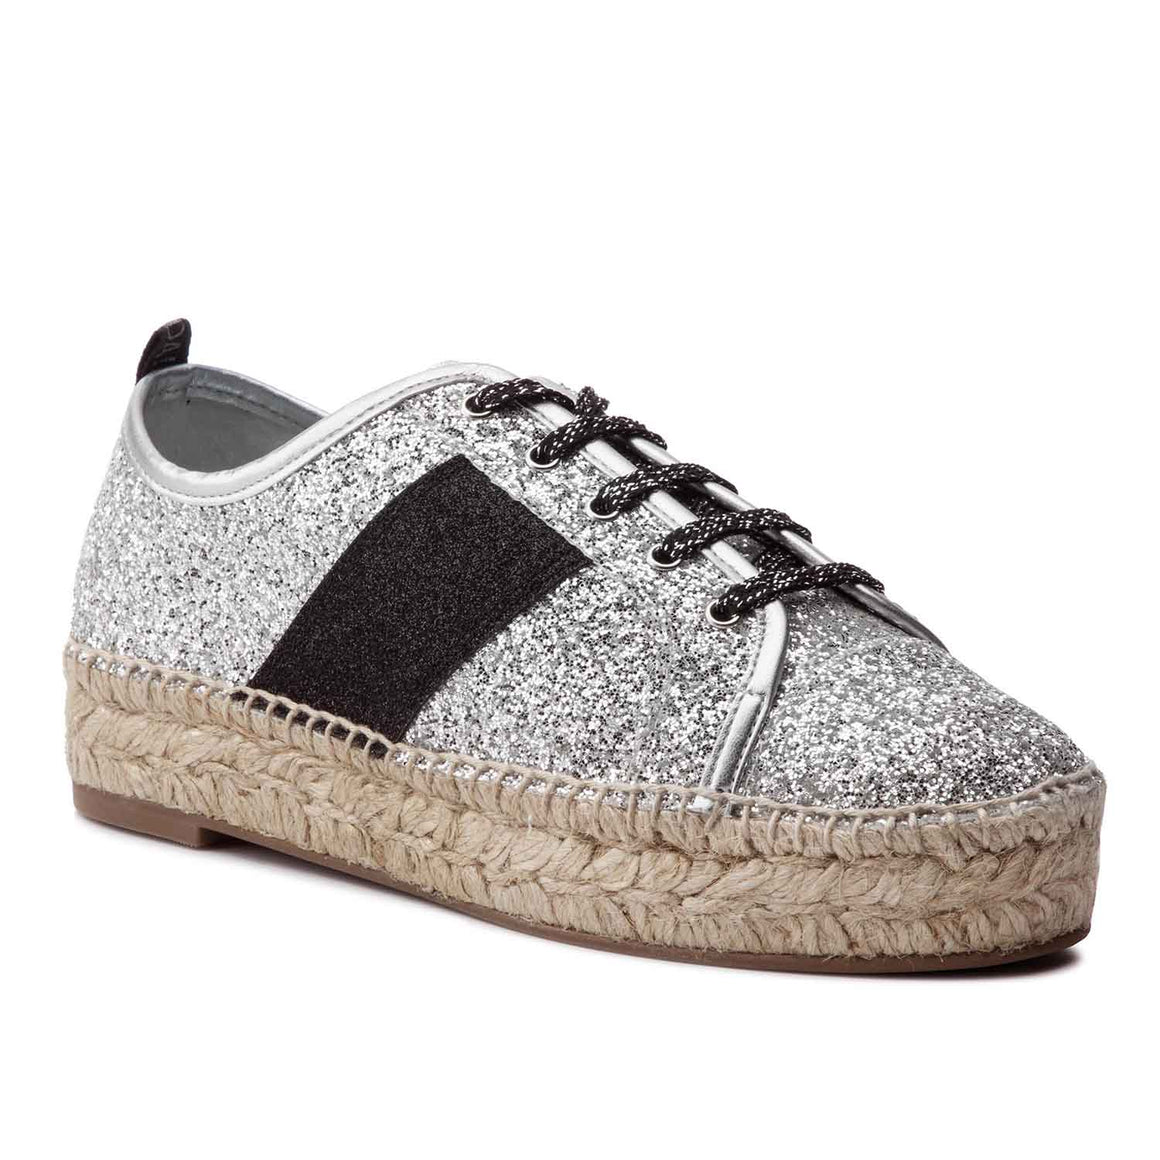 KENDALL + KYLIE JURY SILVER ESPADRILLE